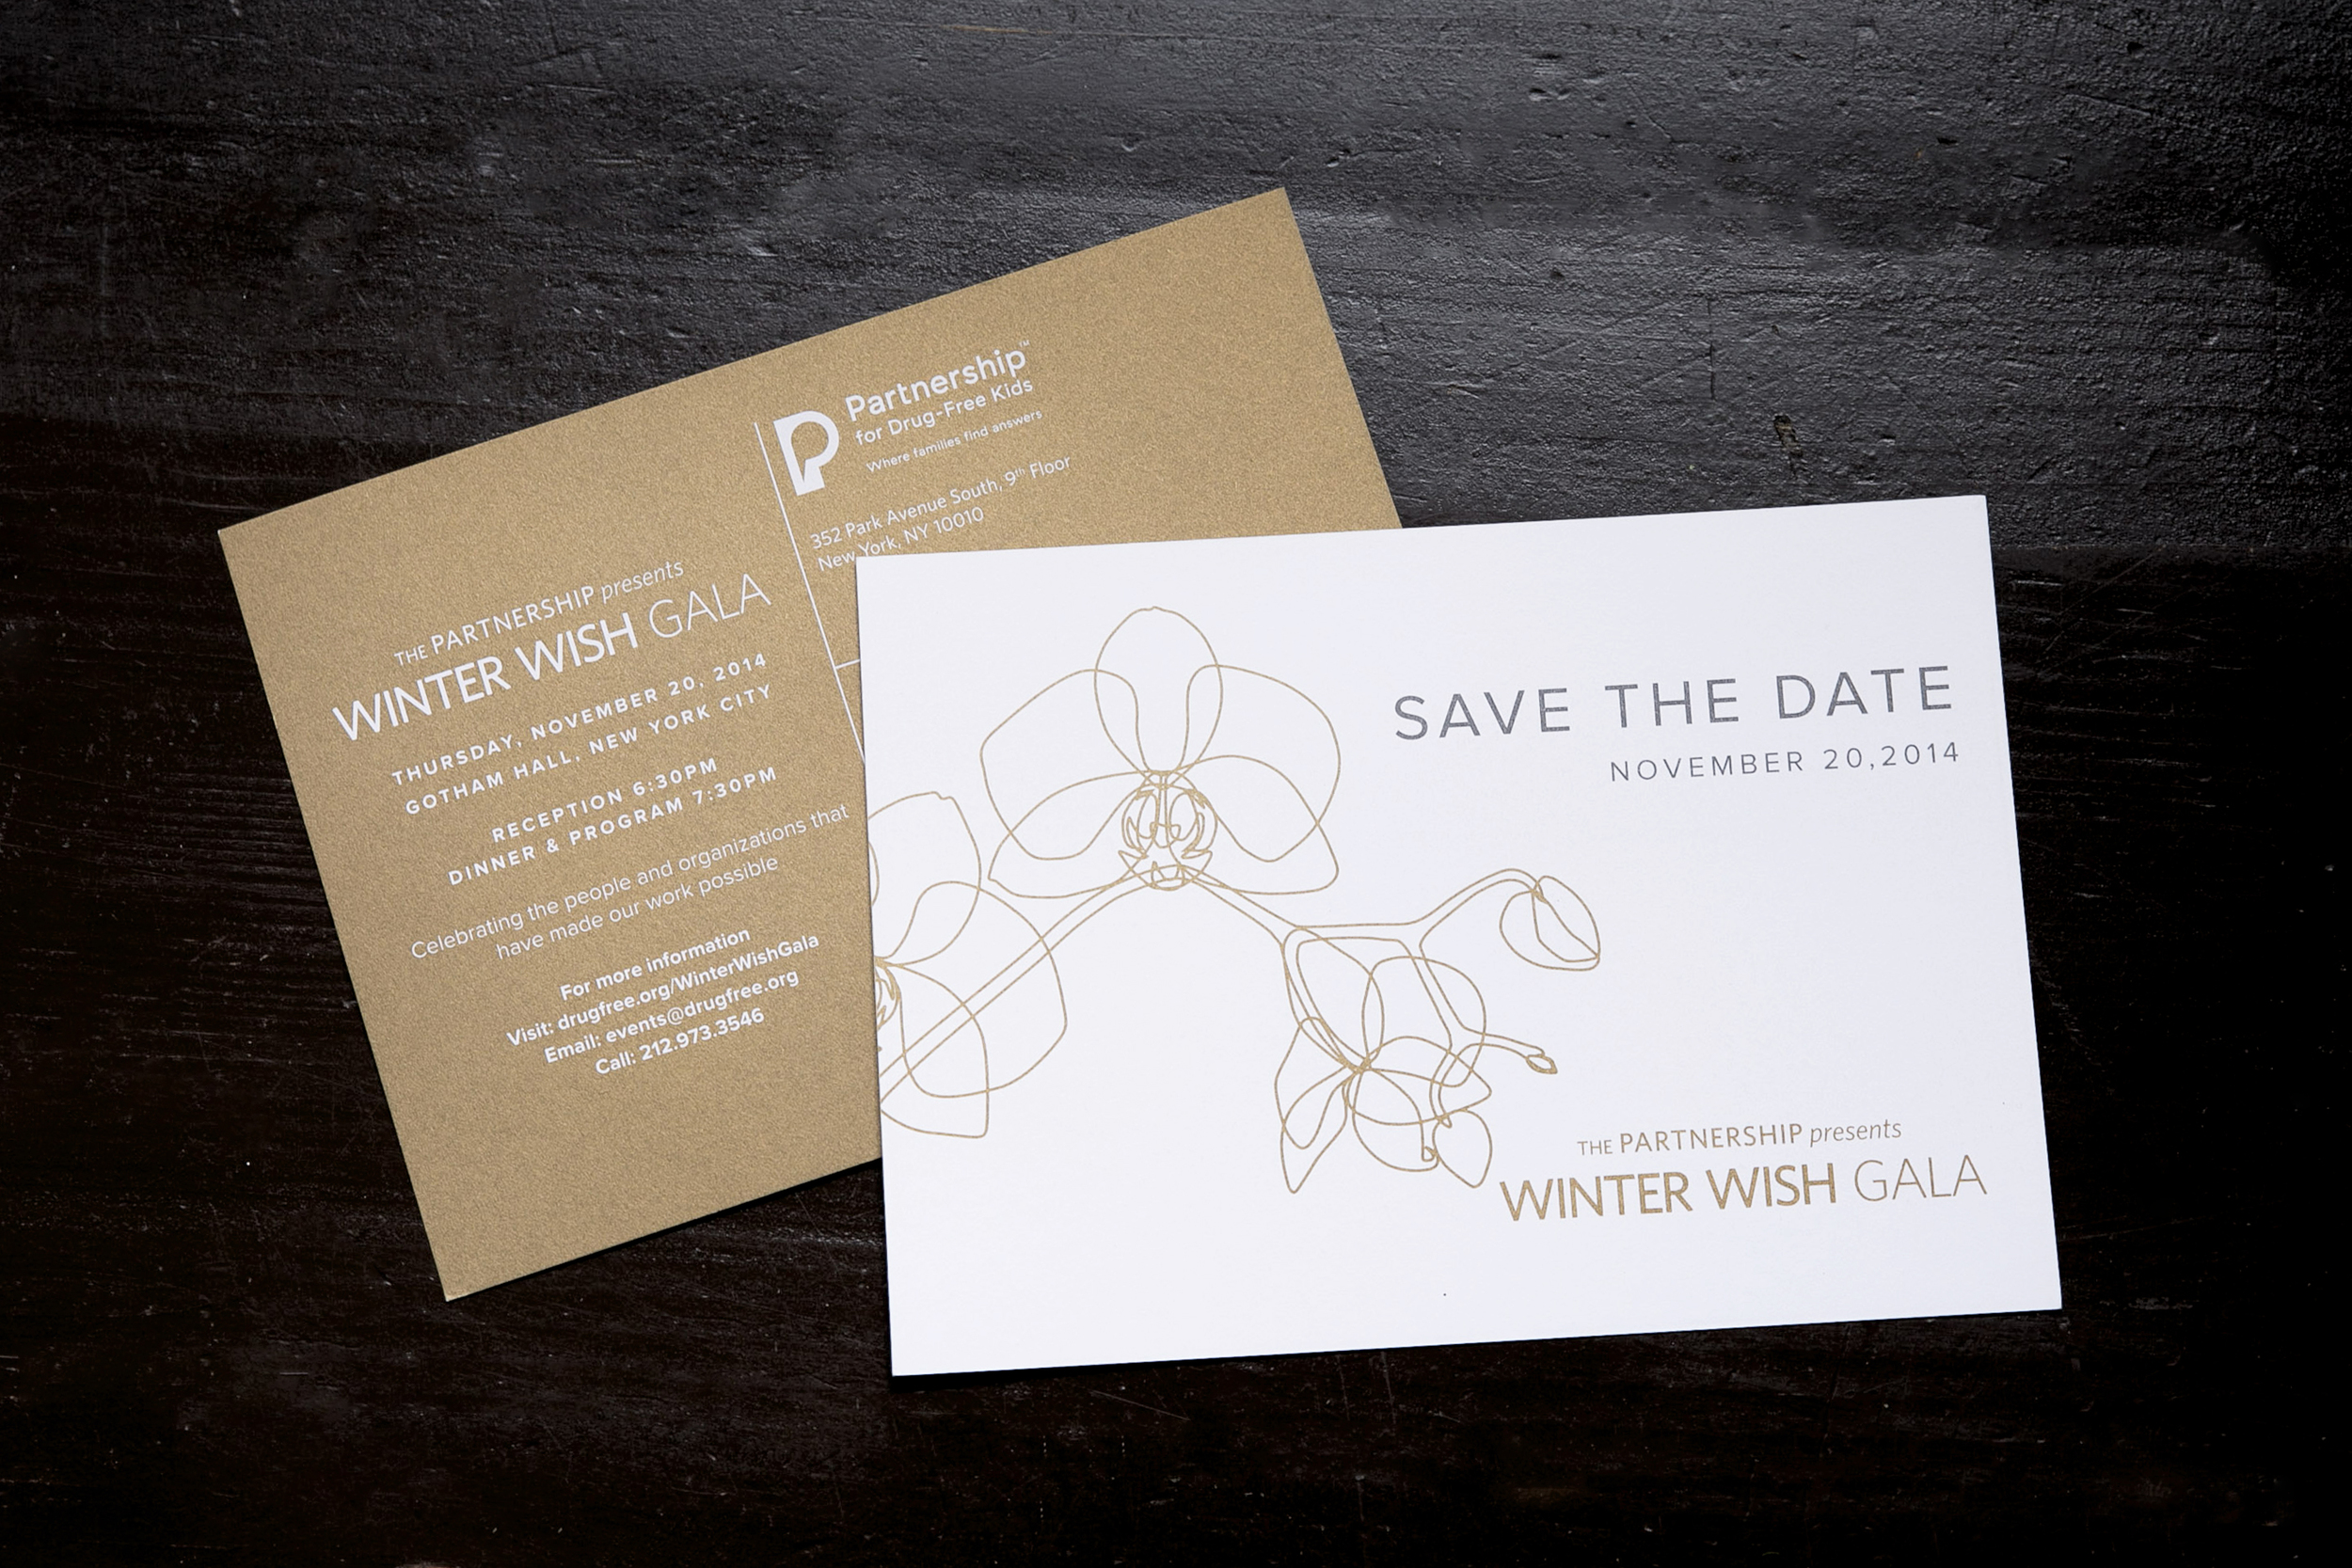 We are often asked by corporate clients to design invitations for their events. This save the date post card was designed for the Partnership for Drug-Free Kids' Winter Wish Gala. The invitations were just being sent out when this was photographed. Photography by: Simply Sweet Snapshots